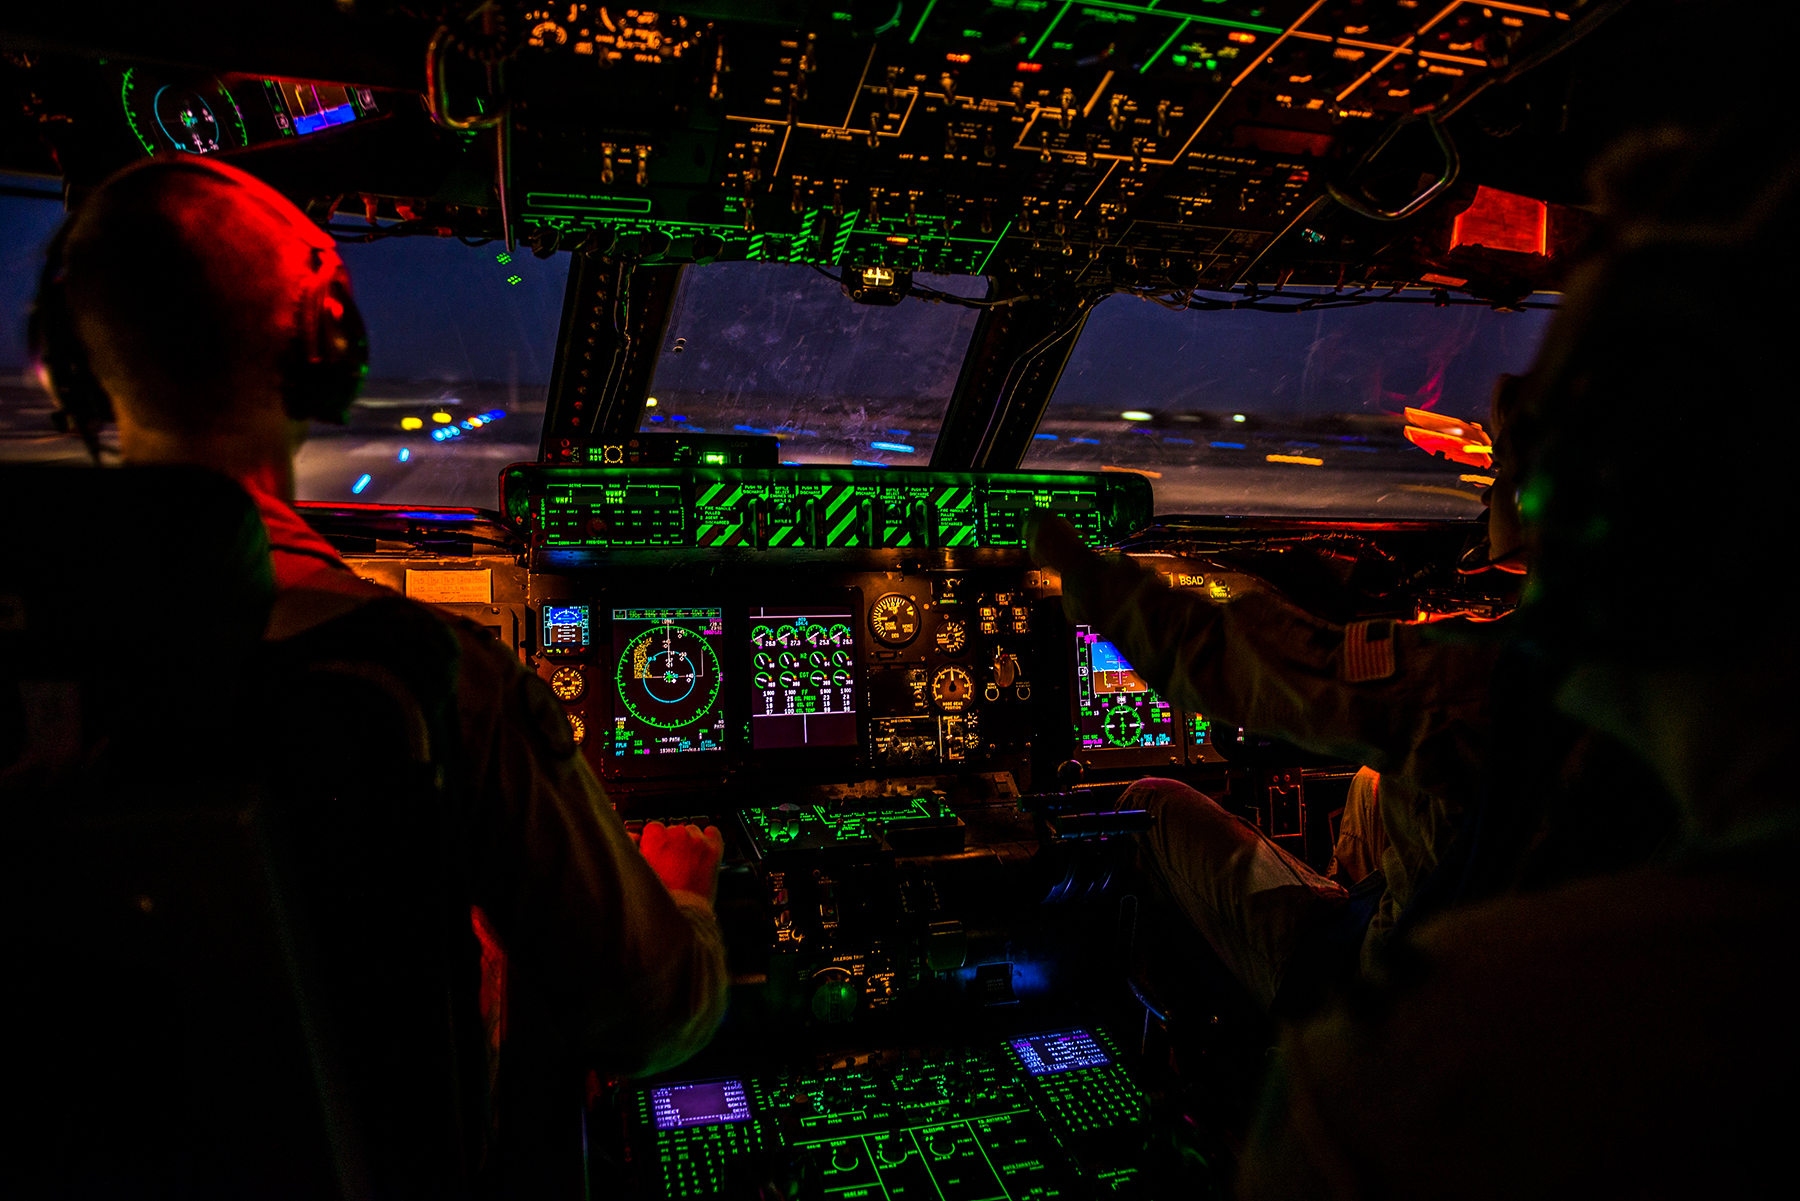 inside of a air force plane cockpit